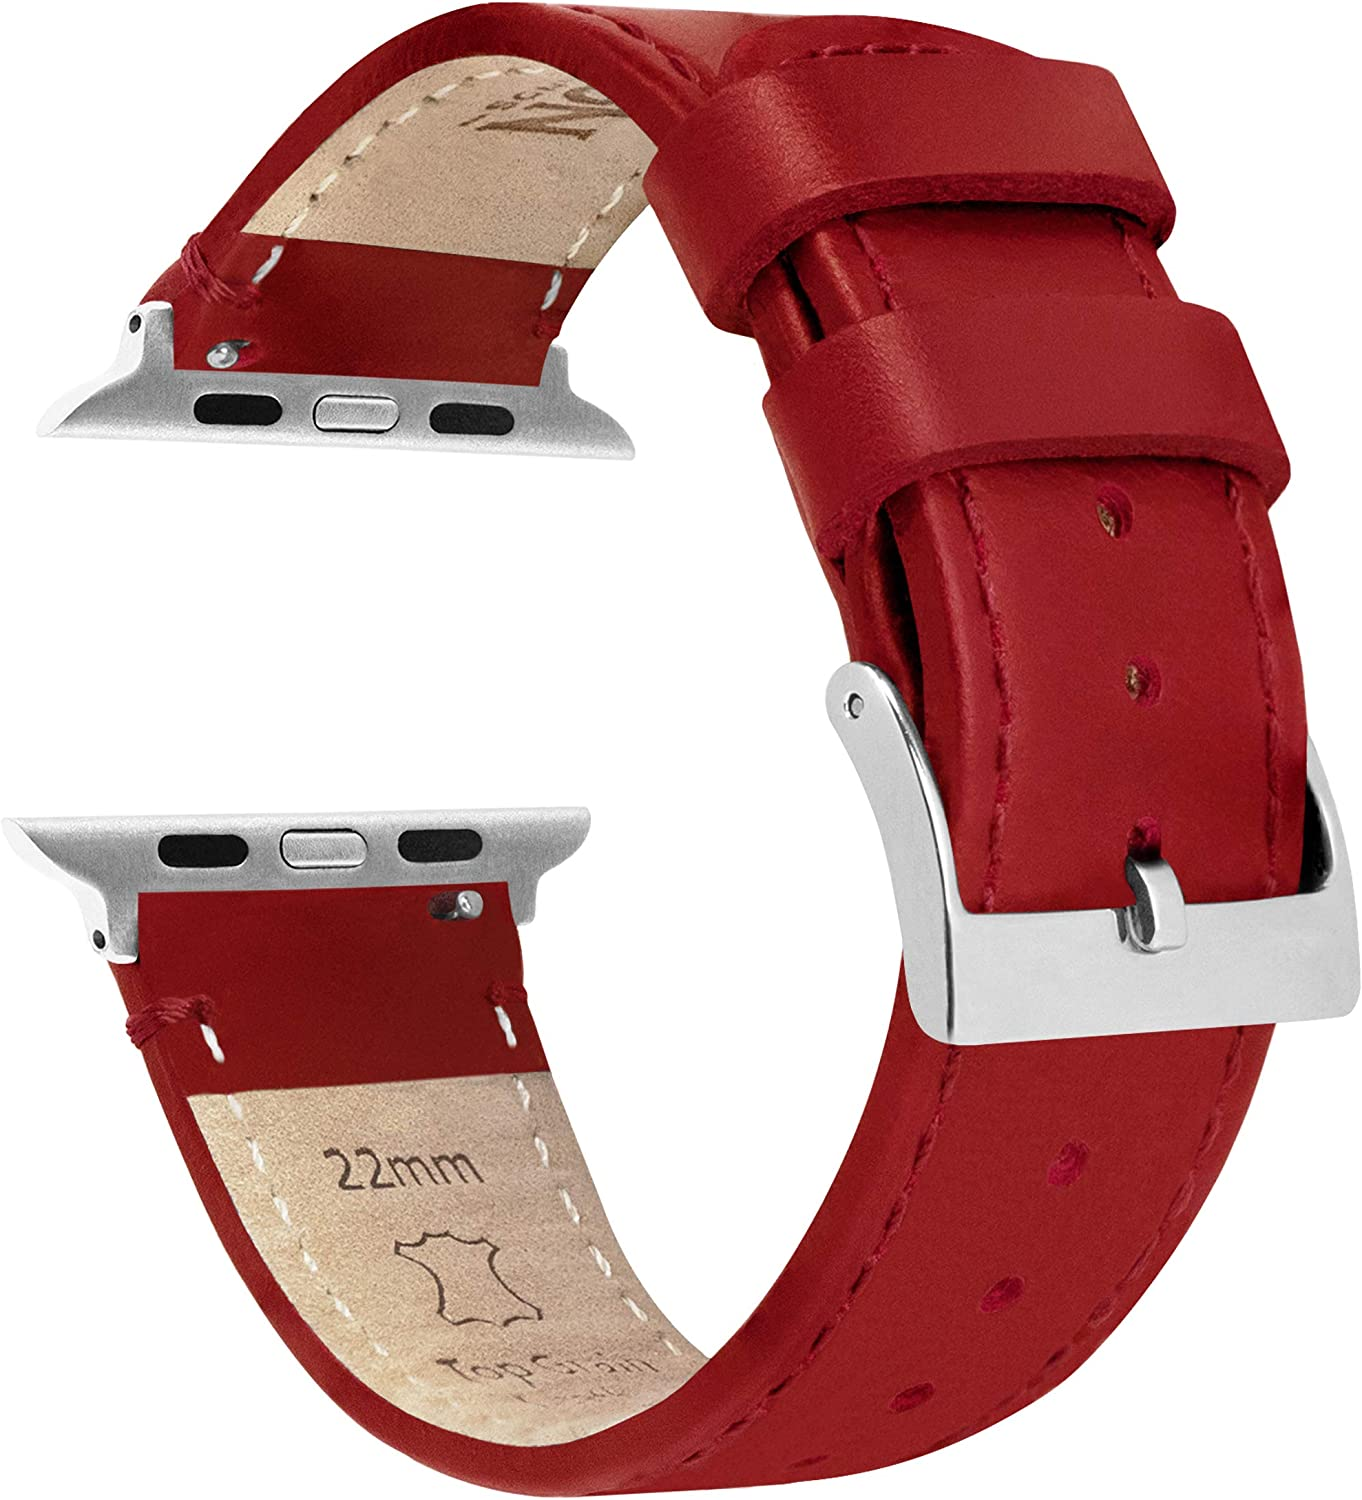 38mm/40mm Crimson Red - Barton Top Grain Leather Watch Bands Compatible with All Apple Watch Models